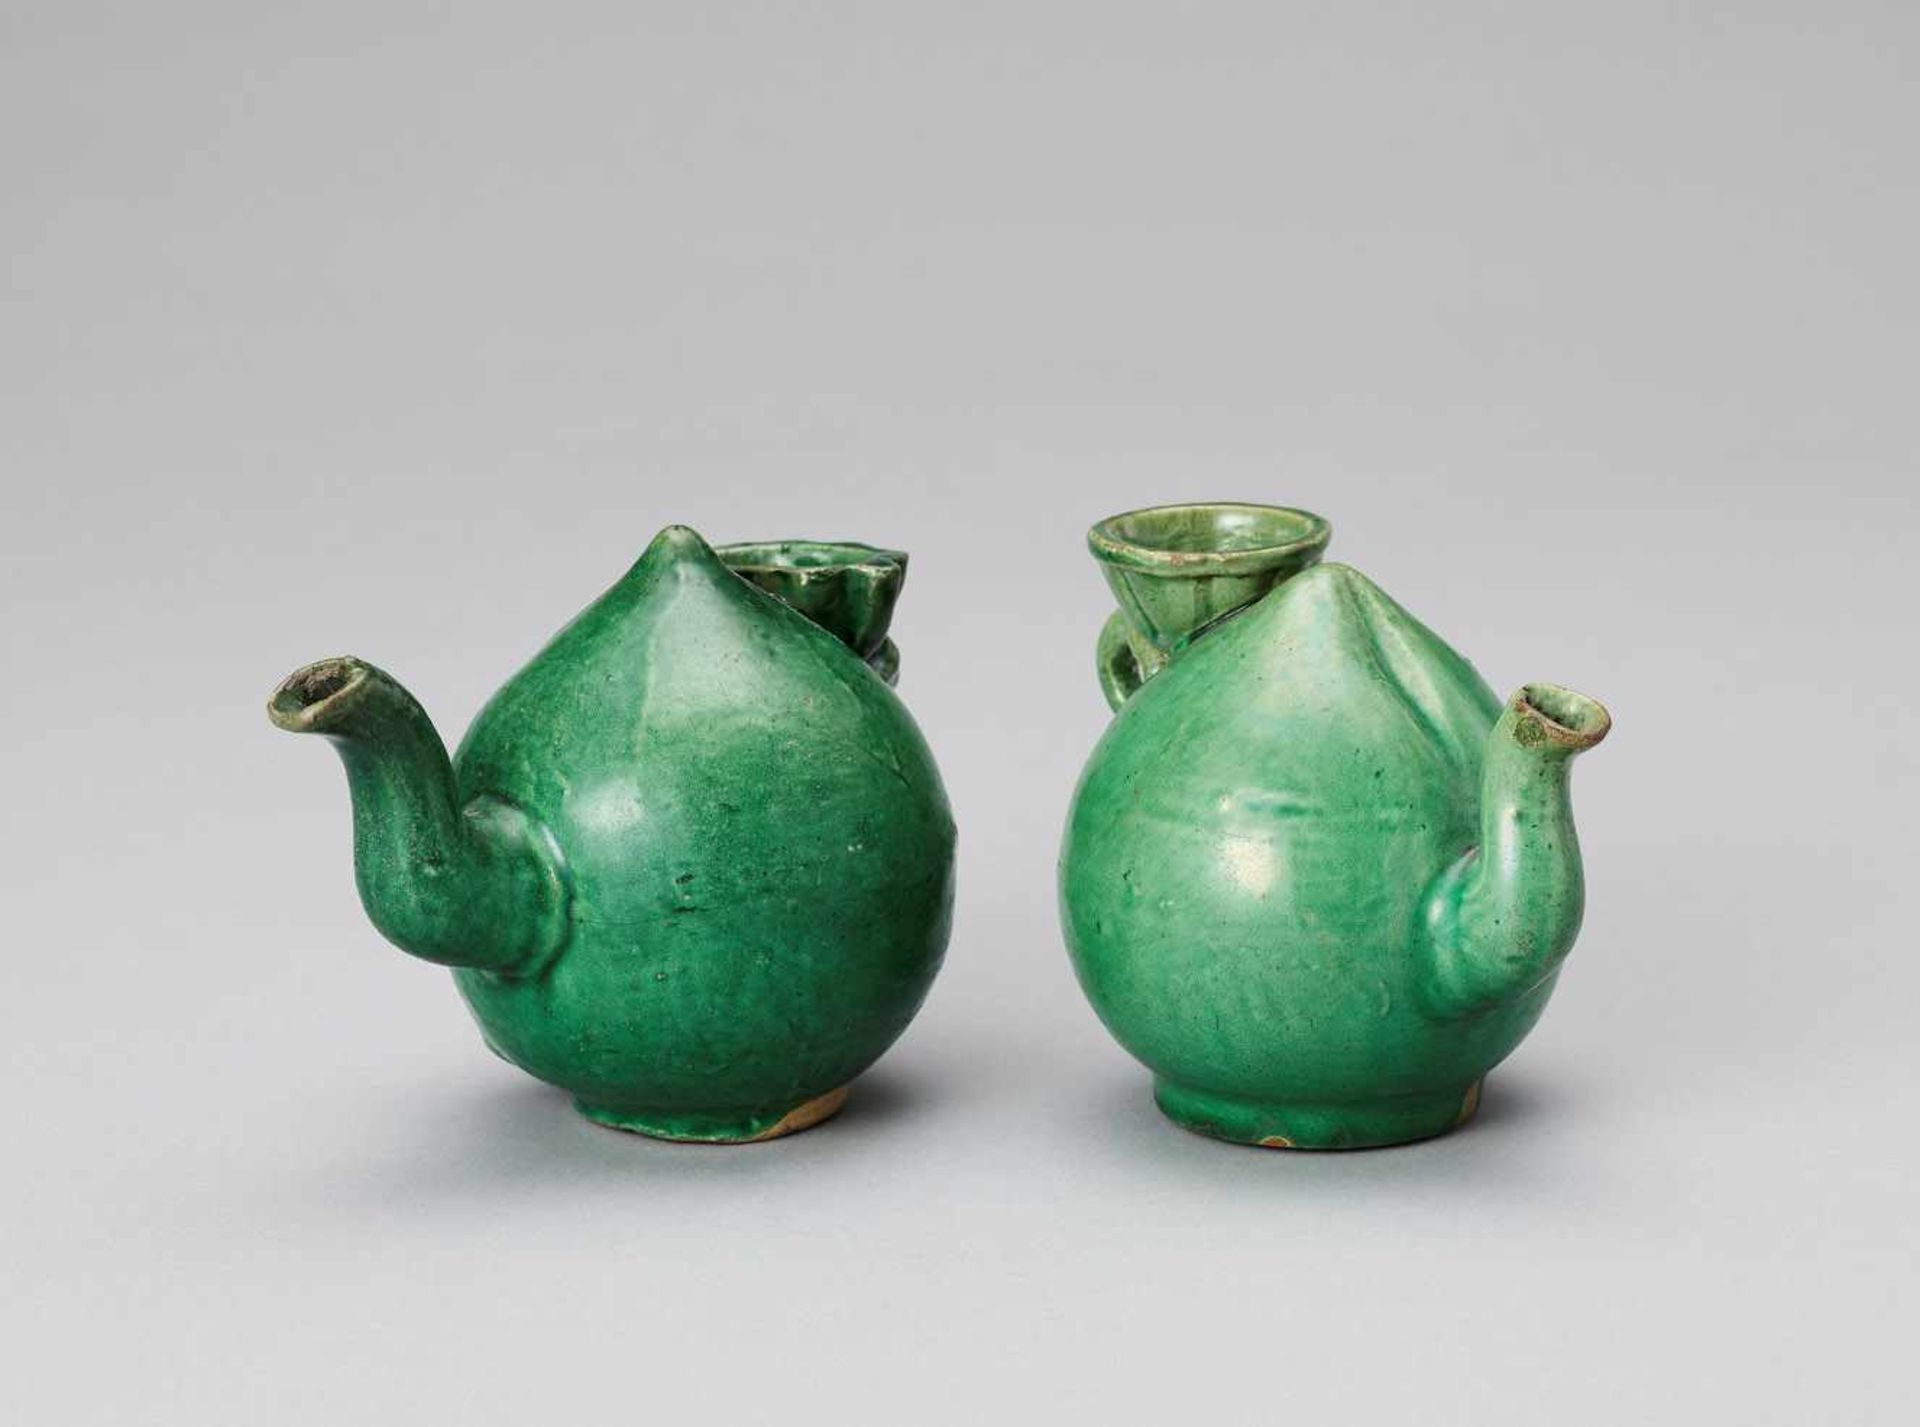 Los 428 - A PAIR OF EMERALD GREEN GLAZED POTTERY PEACH FORM WATER DROPPERS, KANGXI